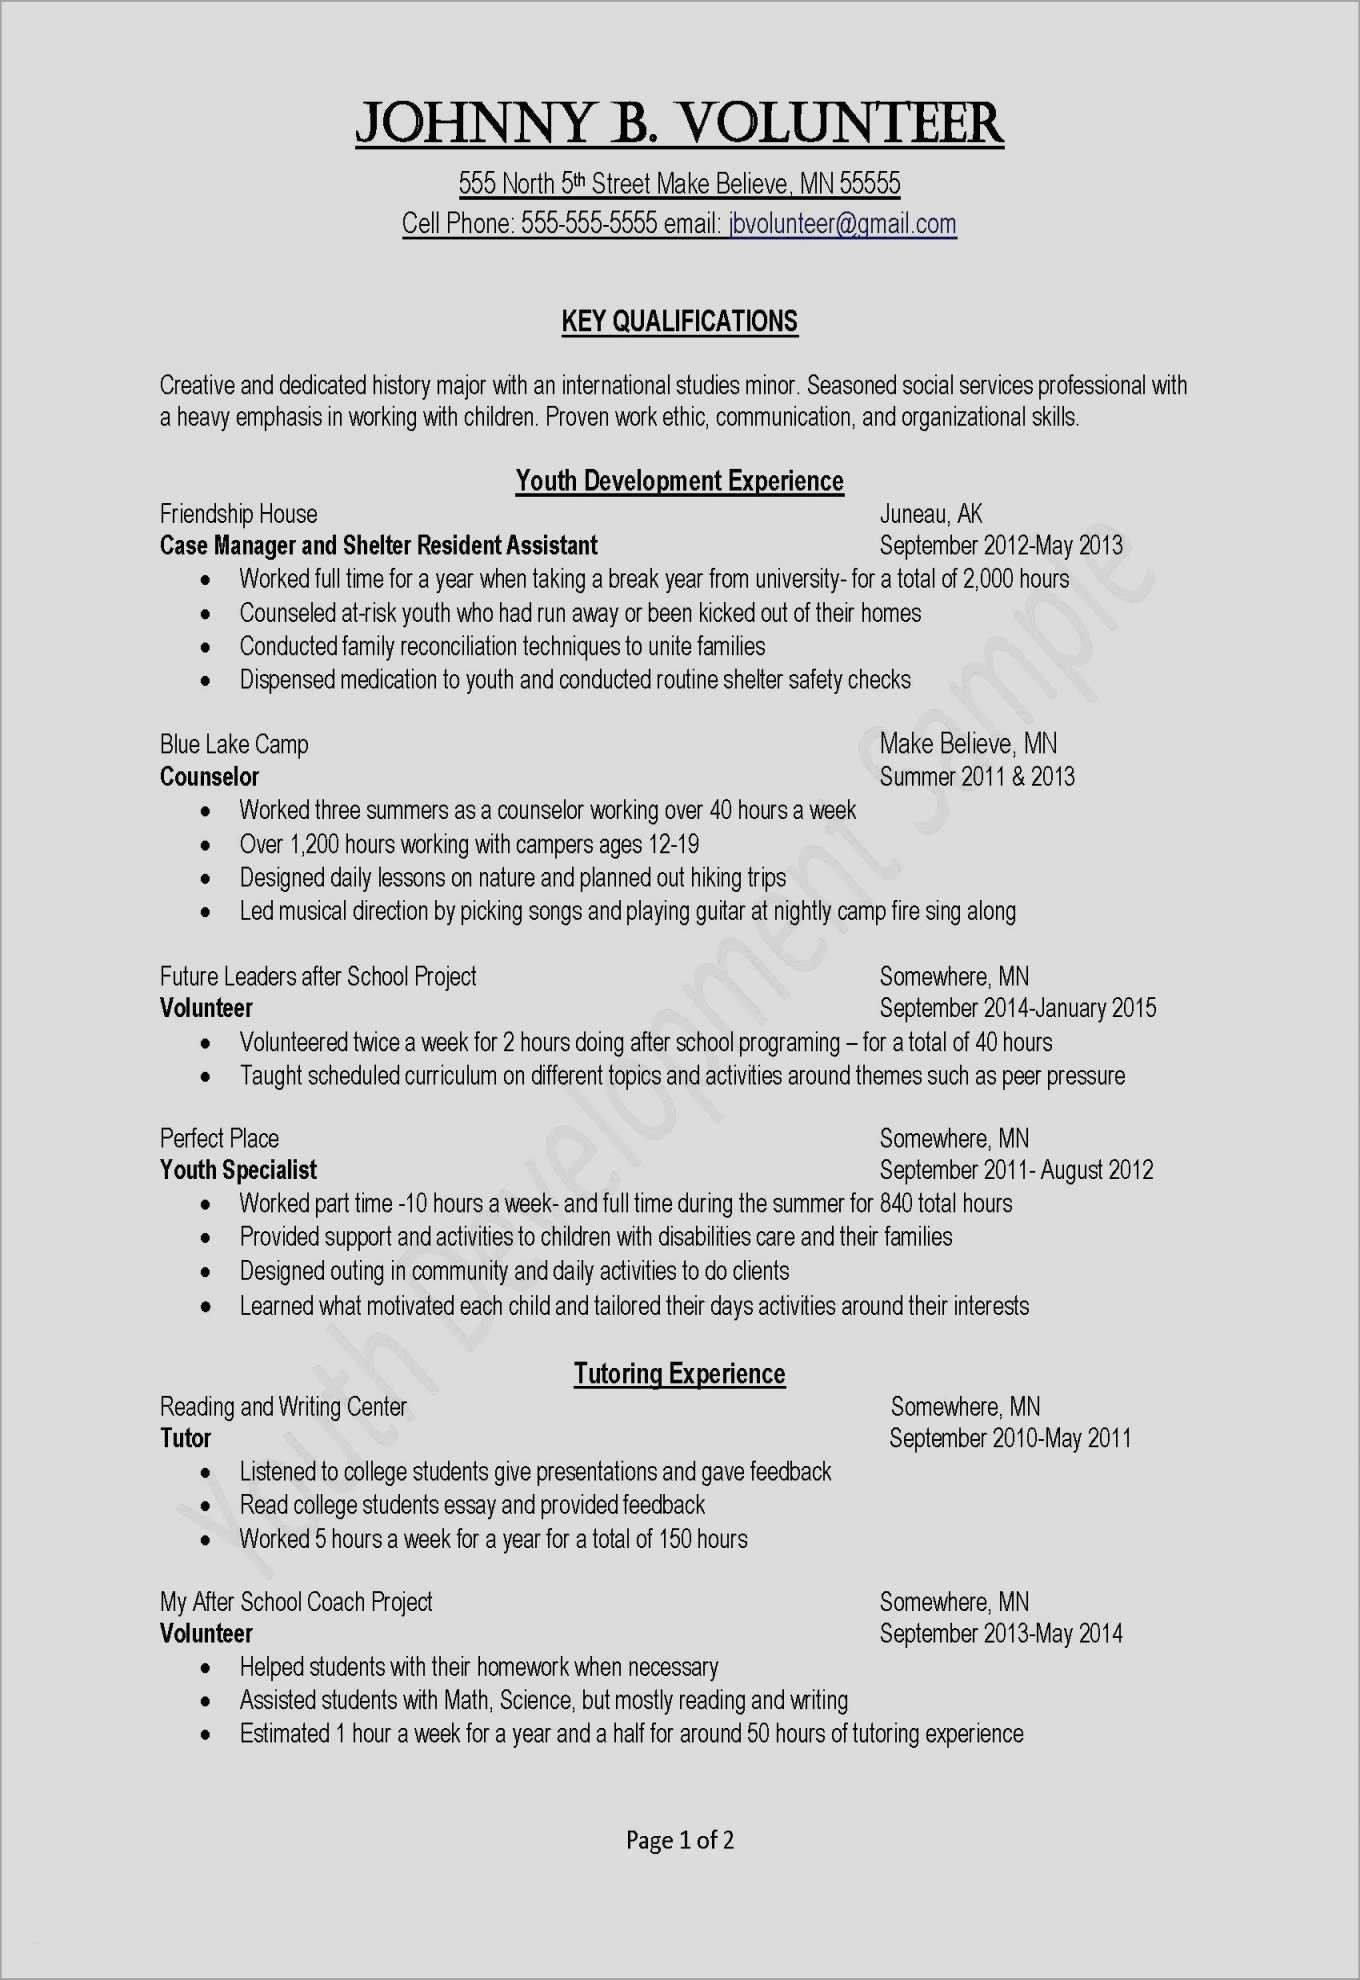 High School Coaching Resume Luxury 20 Awesome Cover Letter 2 Pages Free Resume Templates Teacher Resume Examples Resume Examples Resume Skills